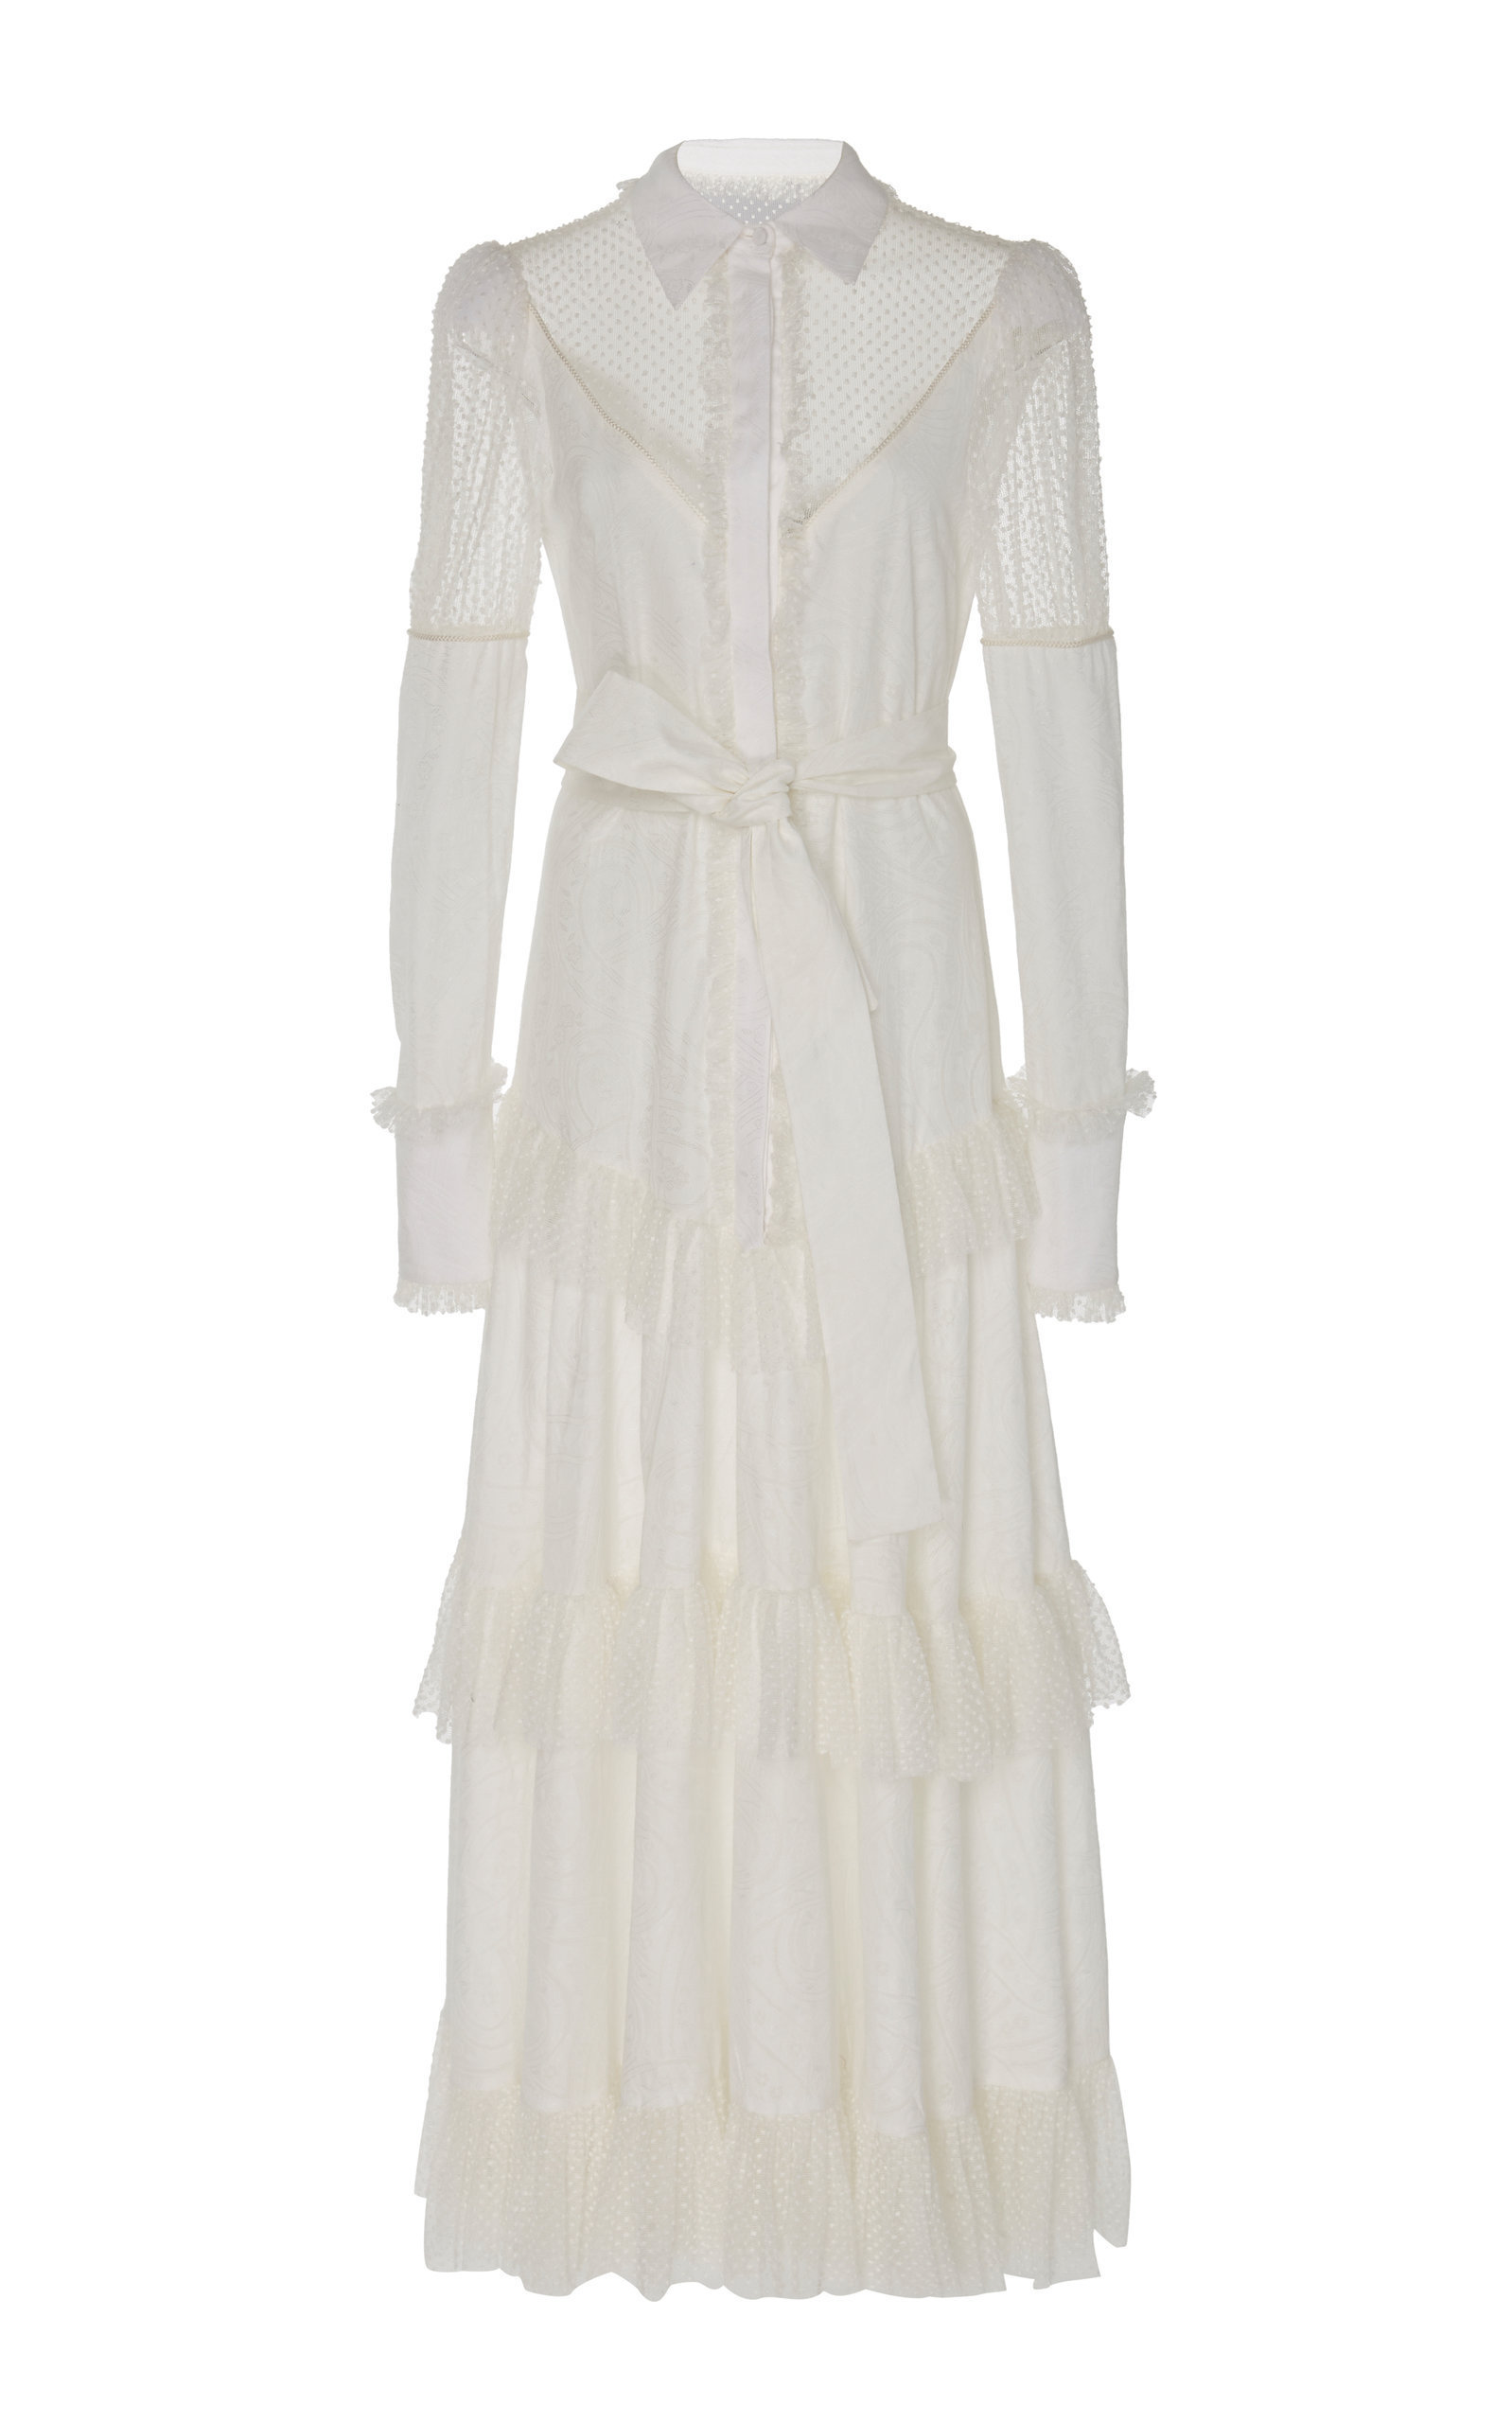 a1f7fed6526d2b Alexis Evarra Tiered-Hem Ruffled-Lace Maxi Dress In White | ModeSens